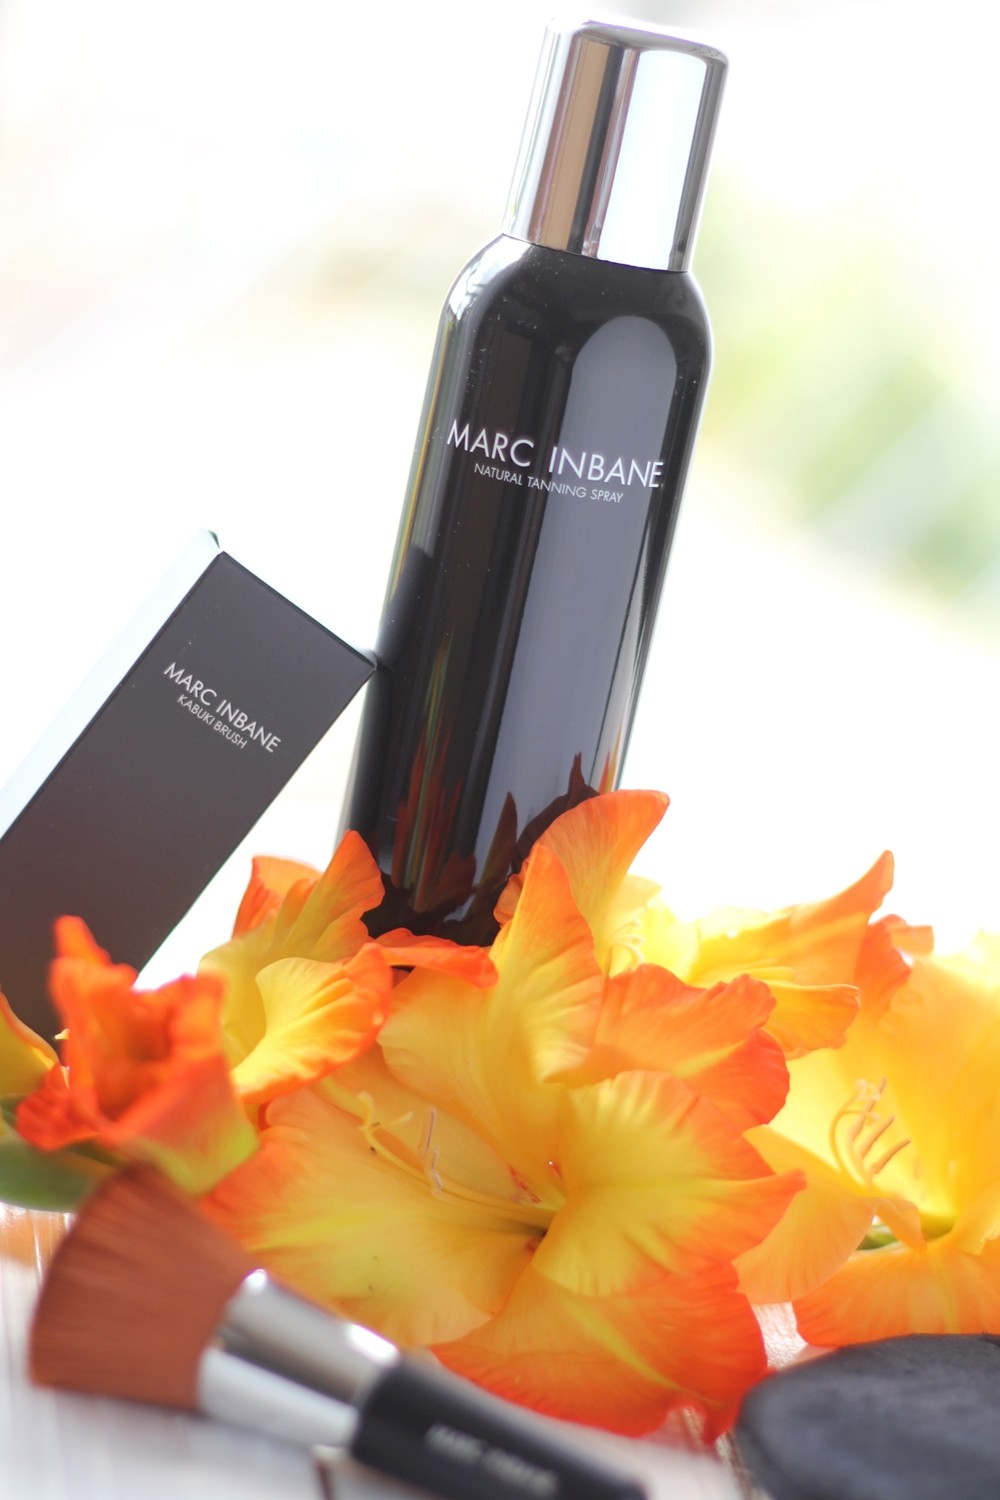 Marc Inbane Natural Tanning Spray 1